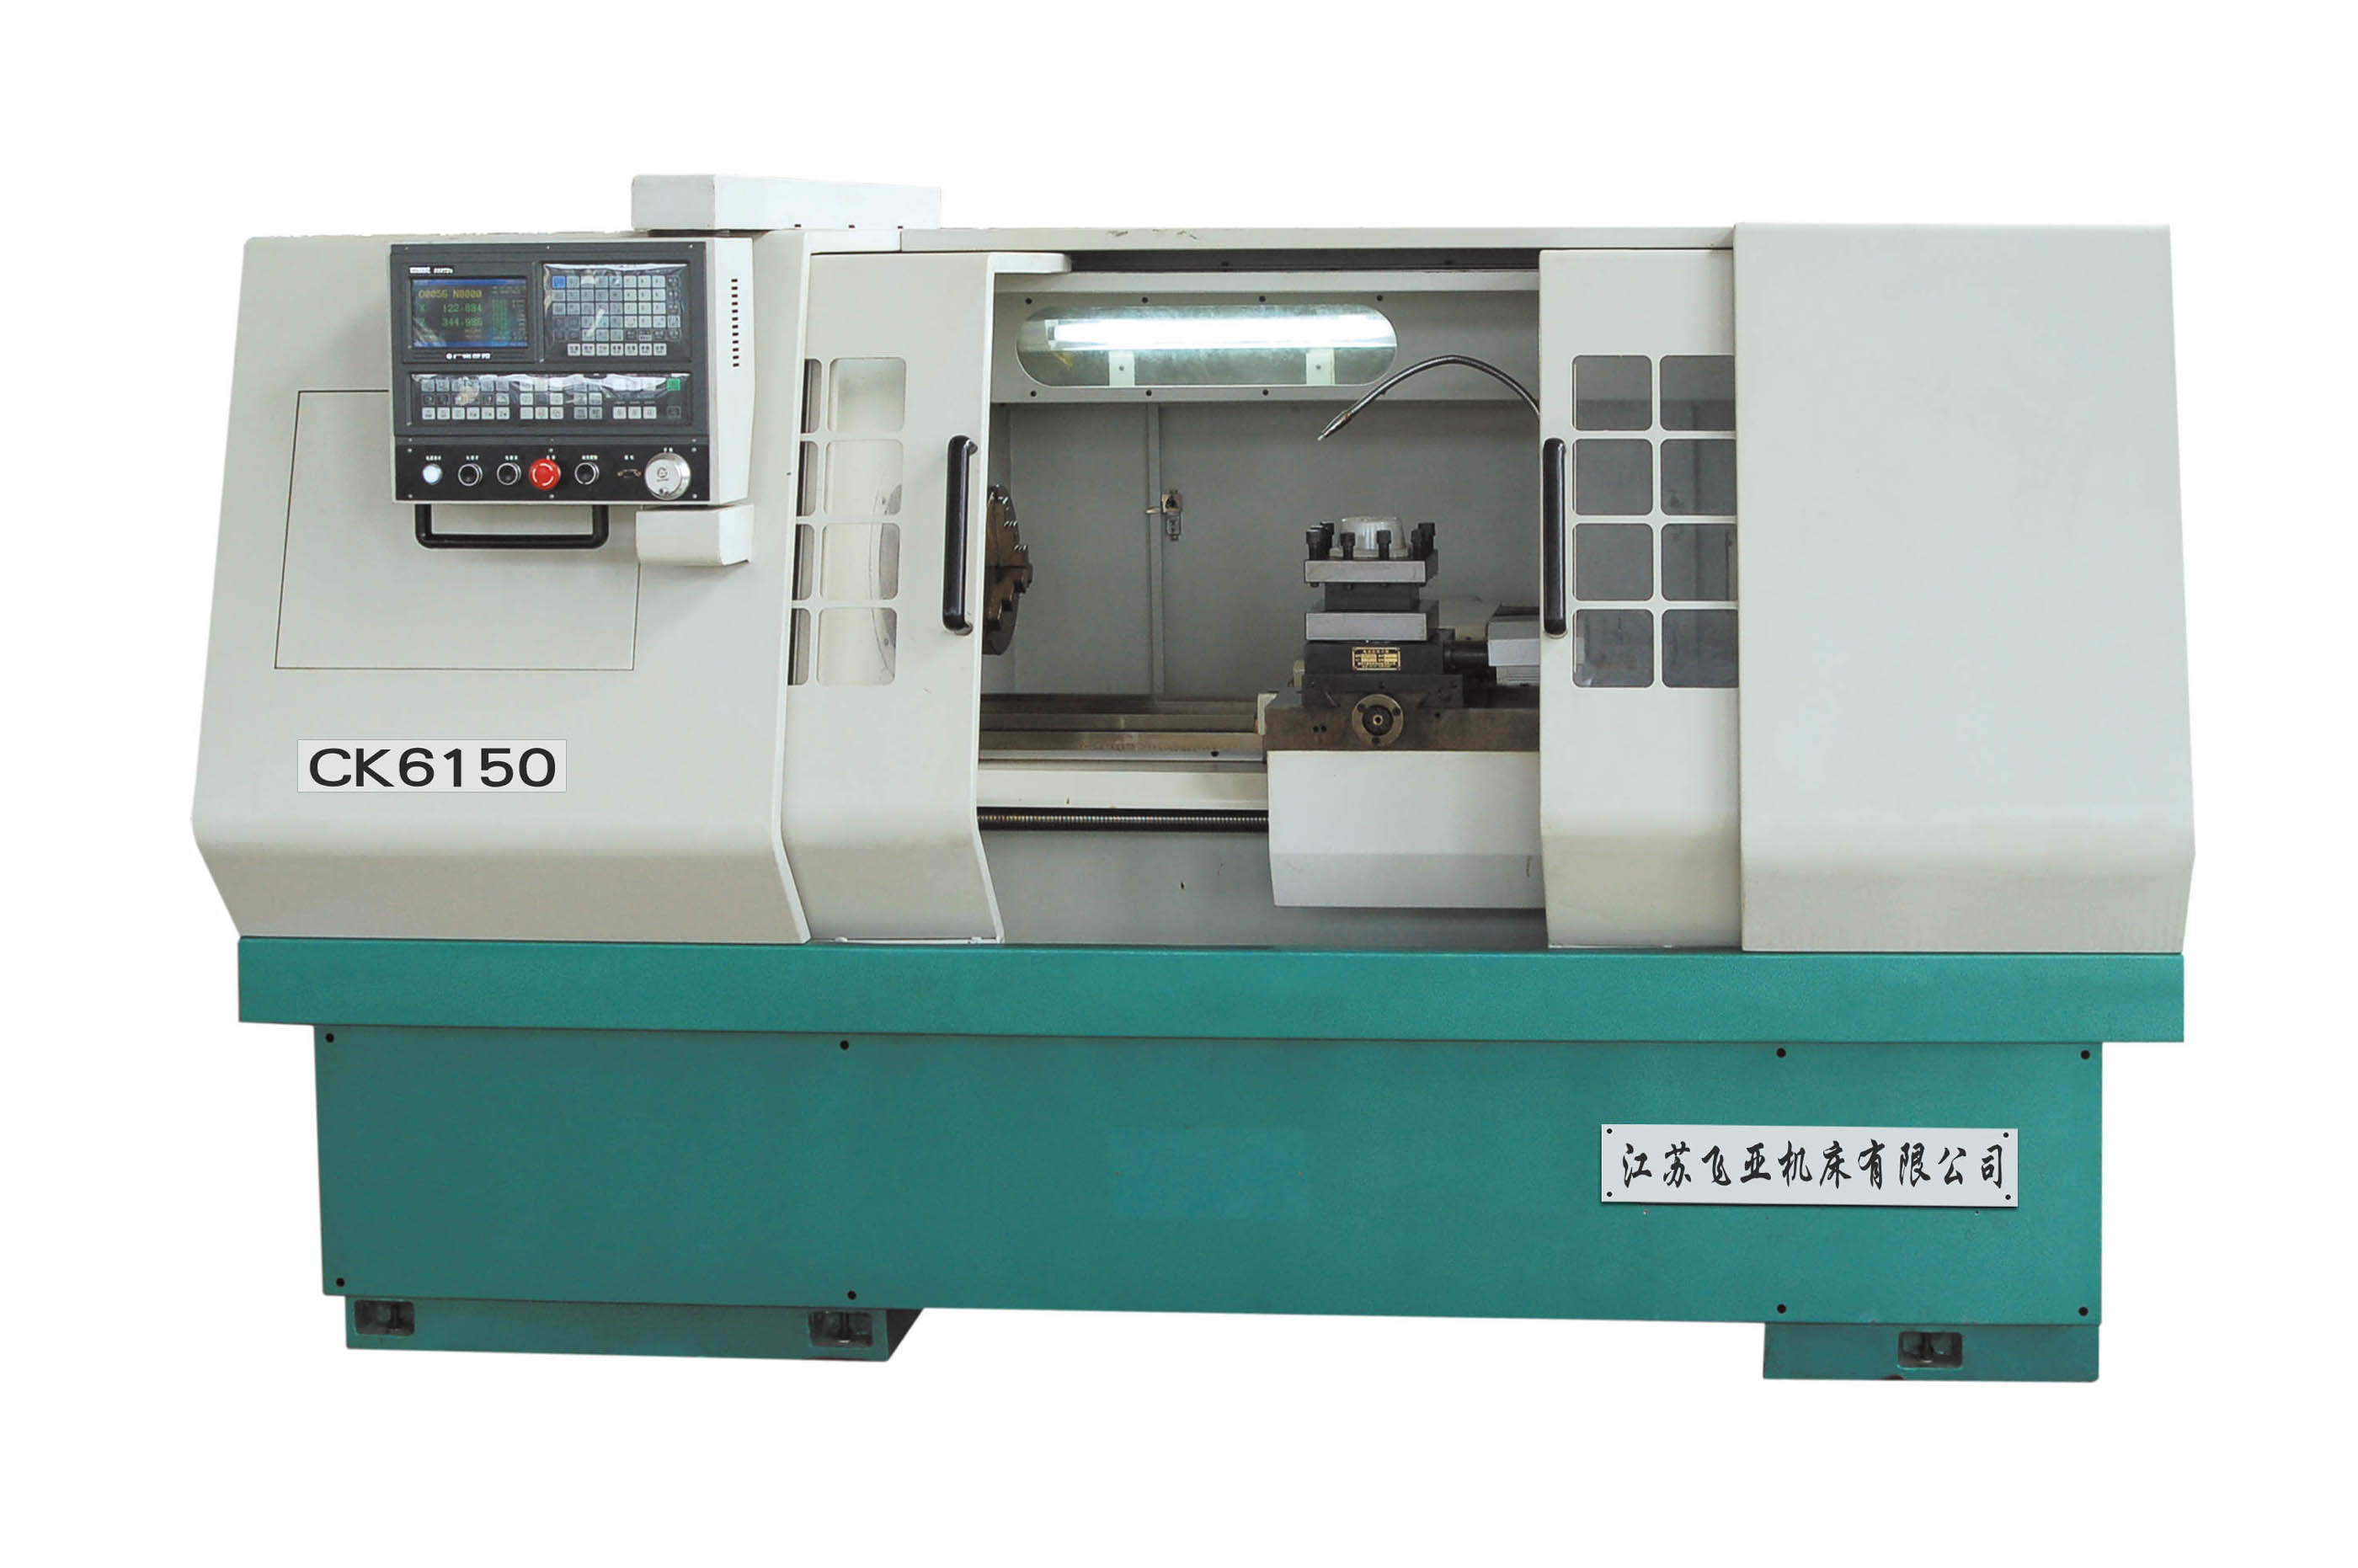 CK6150 Lathe Machine